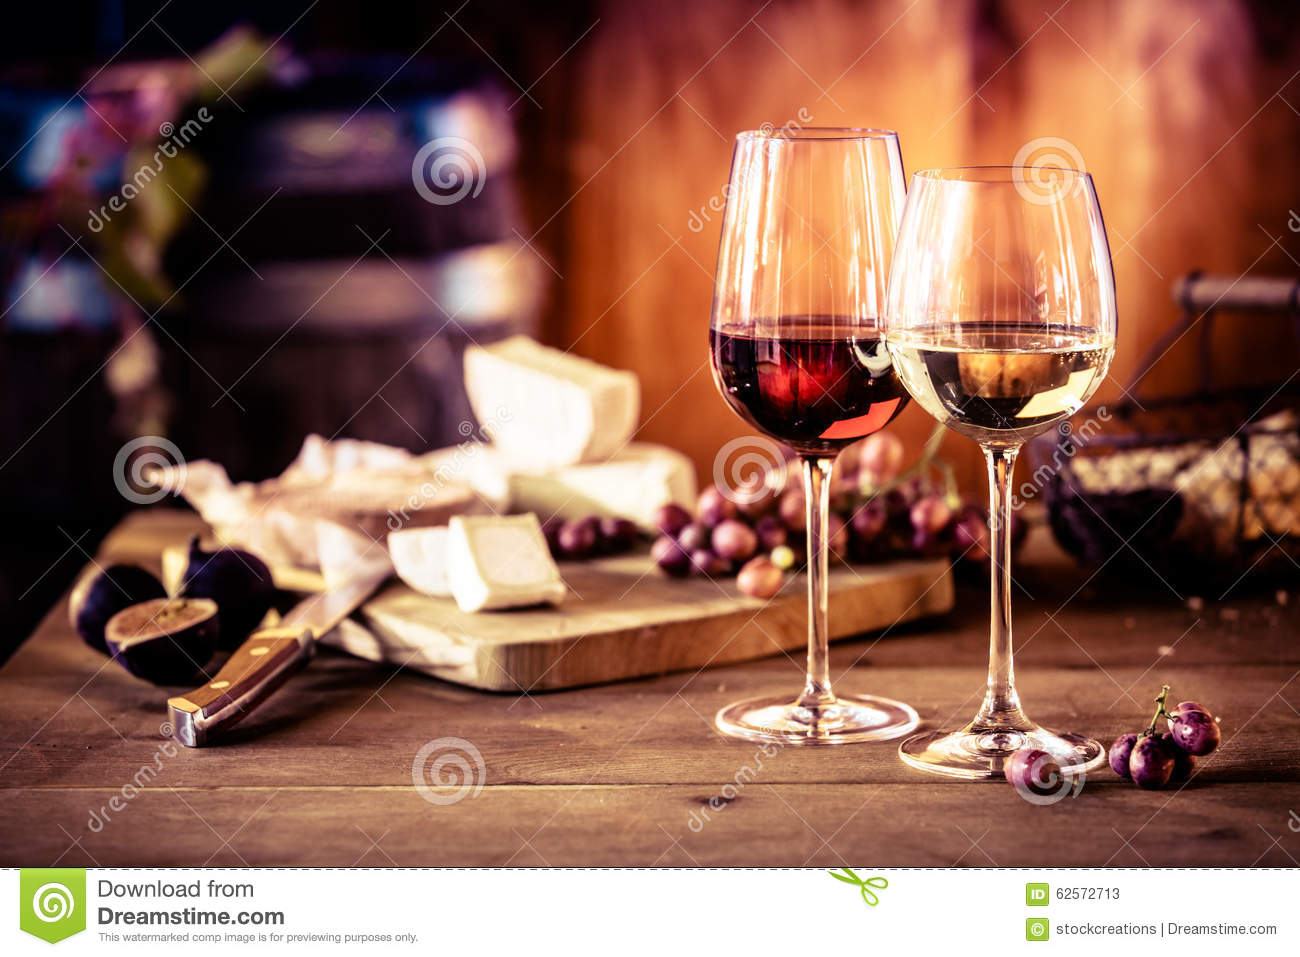 Cheese platter with wine in front of fire